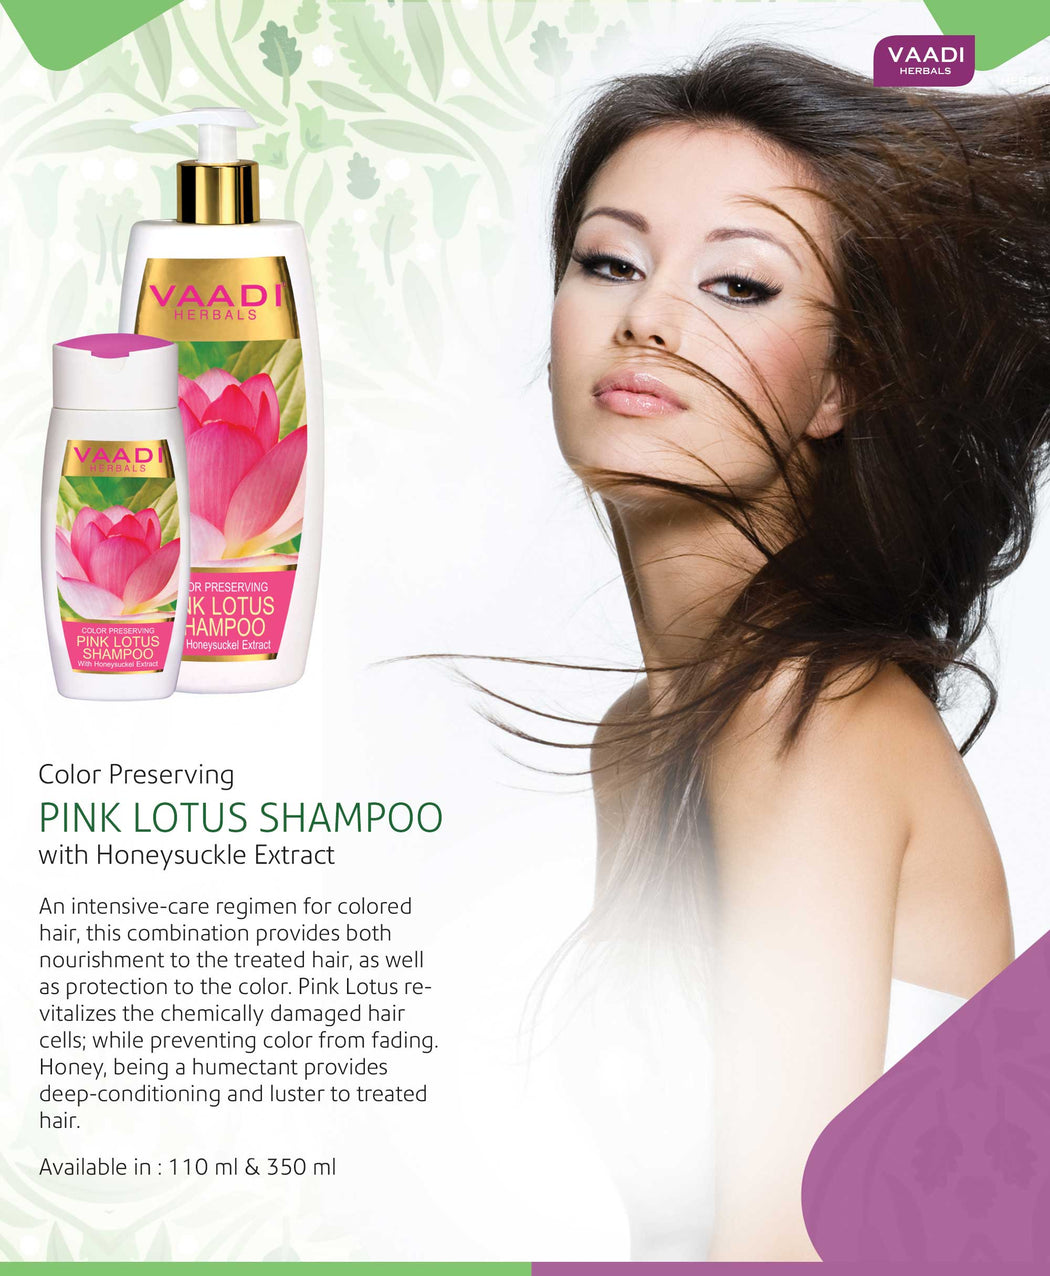 Pack of 3 Pink Lotus Shampoo With Honeysuckel Extract - Color Preserving (110 ml x 3)